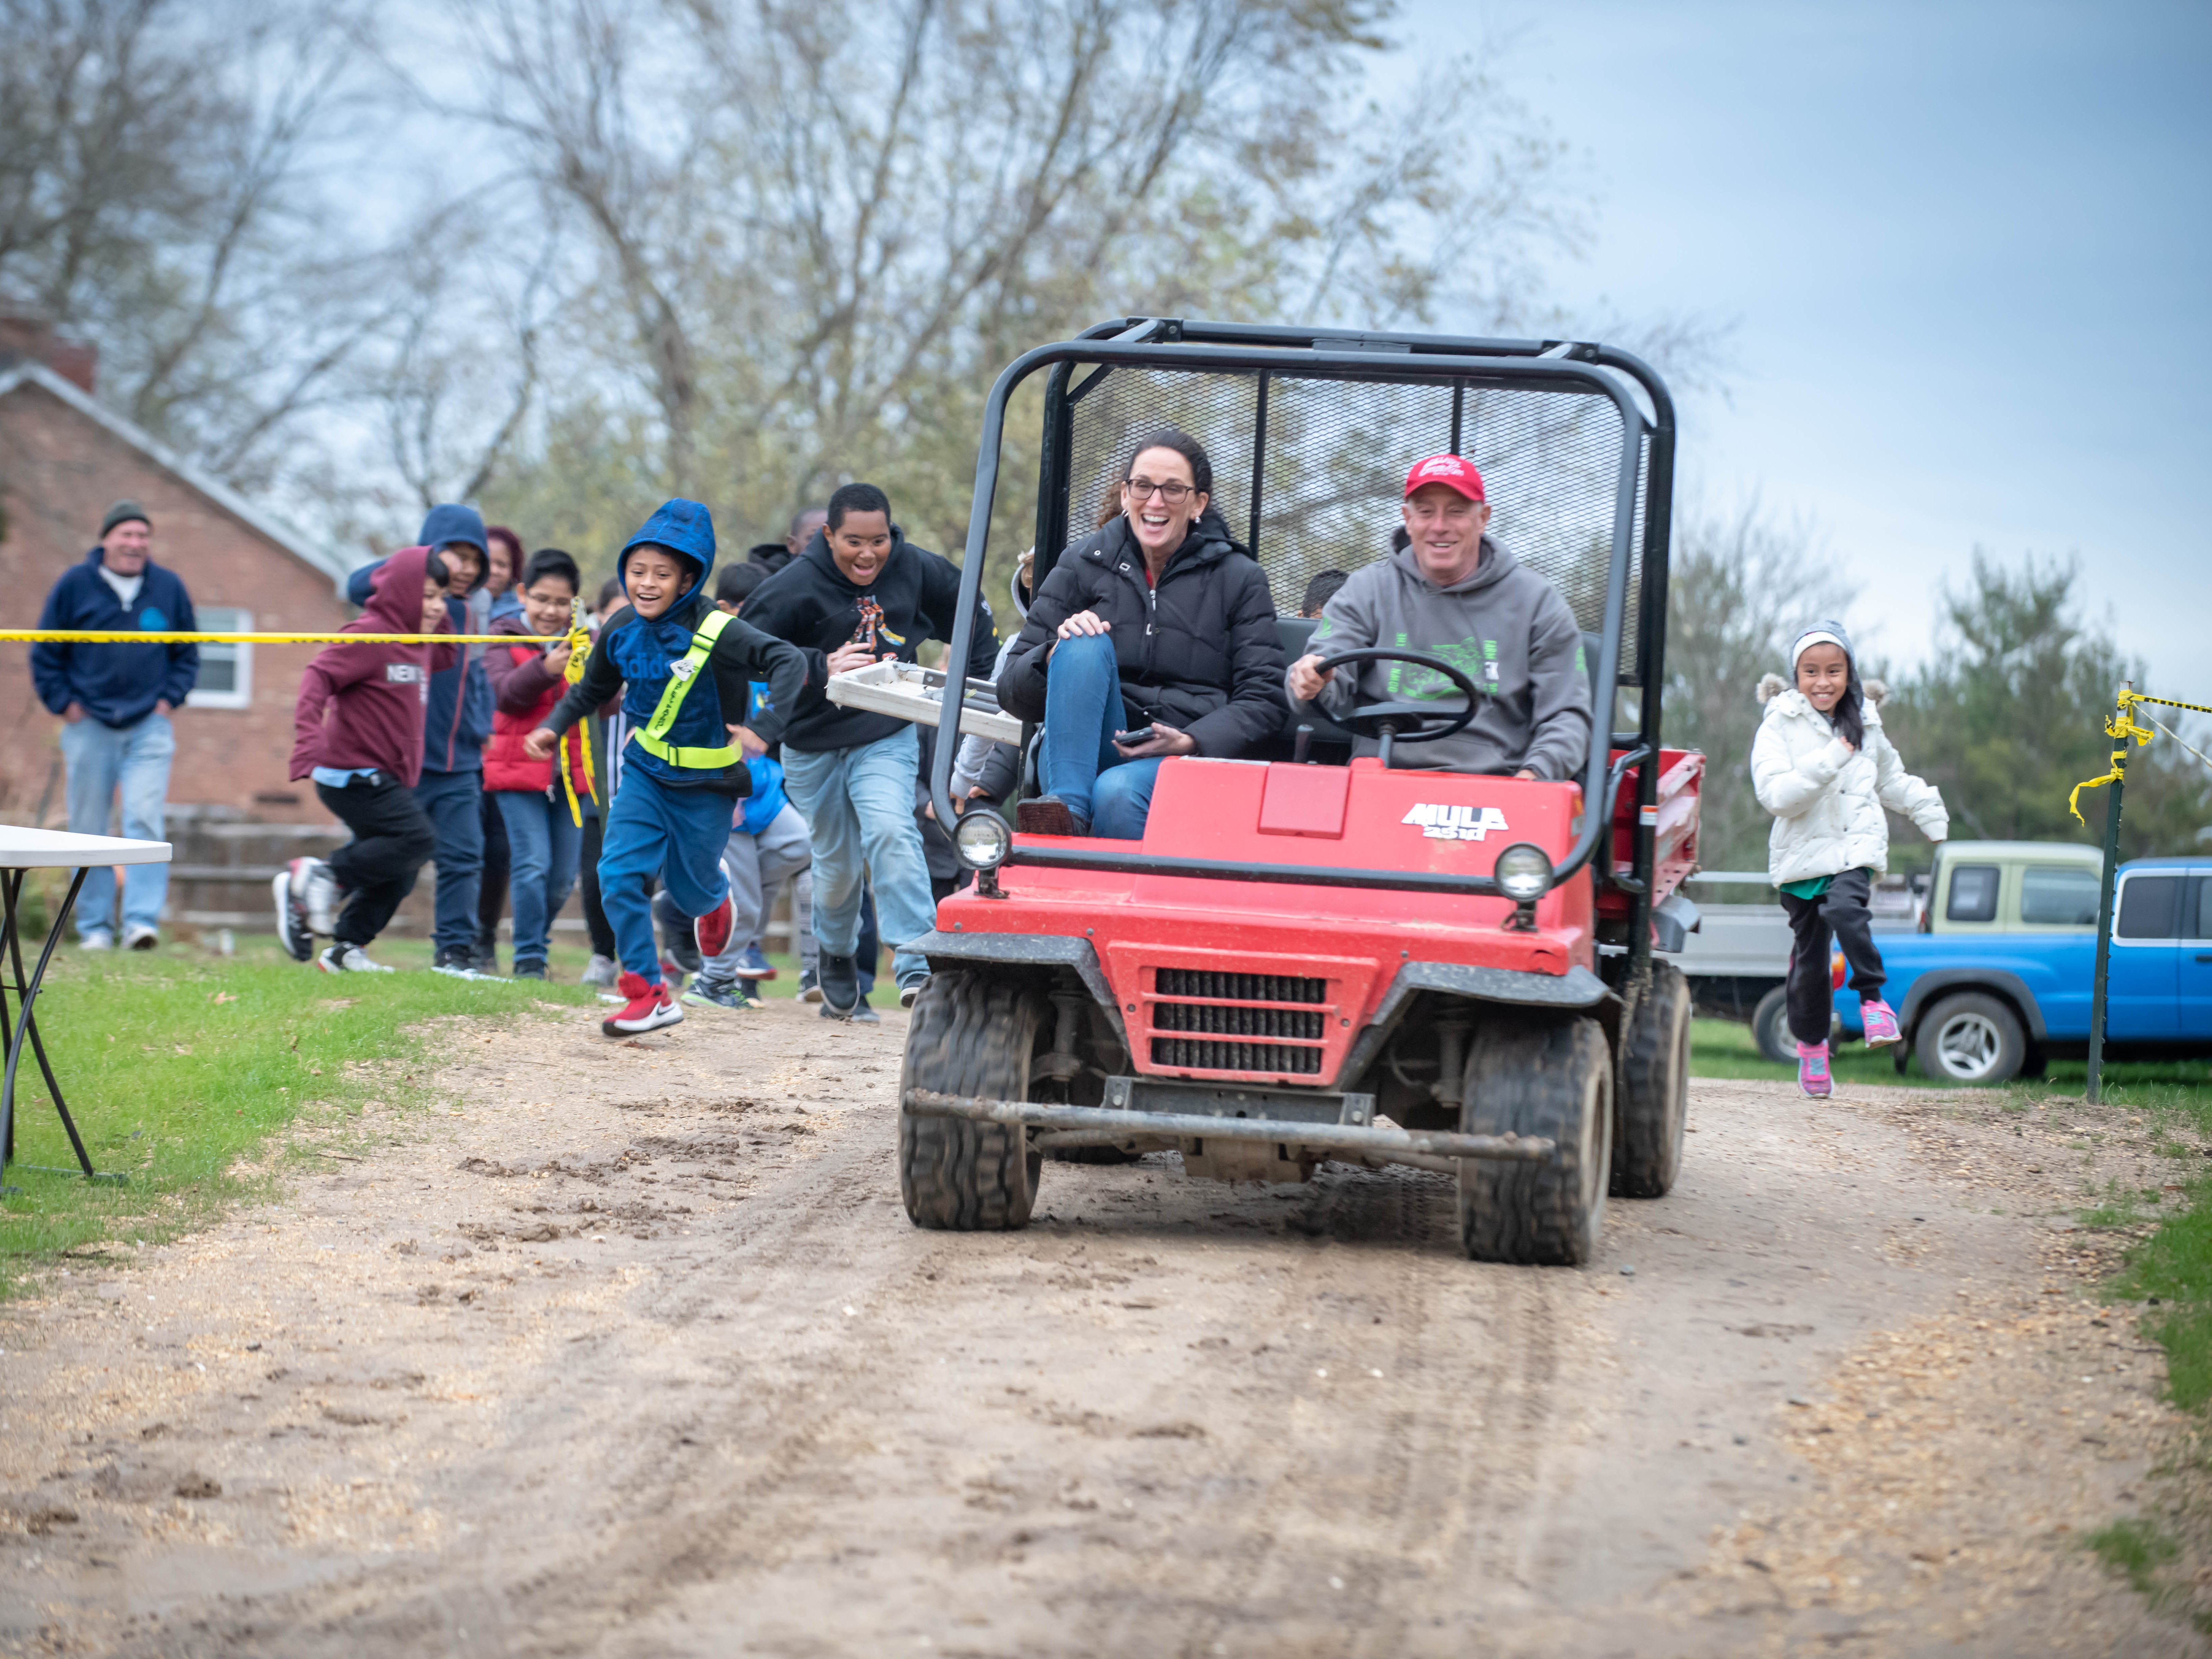 11/13/18- Sean Burney (center) co-founder of Allaire Community Farm, Wall Twsp.,( driving) as students from Woodrow Wilson school in Neptune City and 21st Century after school program , Bradley elementary school in Asbury Park race him down a hill. Seated with Burney is 4th grade teacher from Woodrow Wilson  Karen Bonney  photo/James J. Connolly/Correspondent